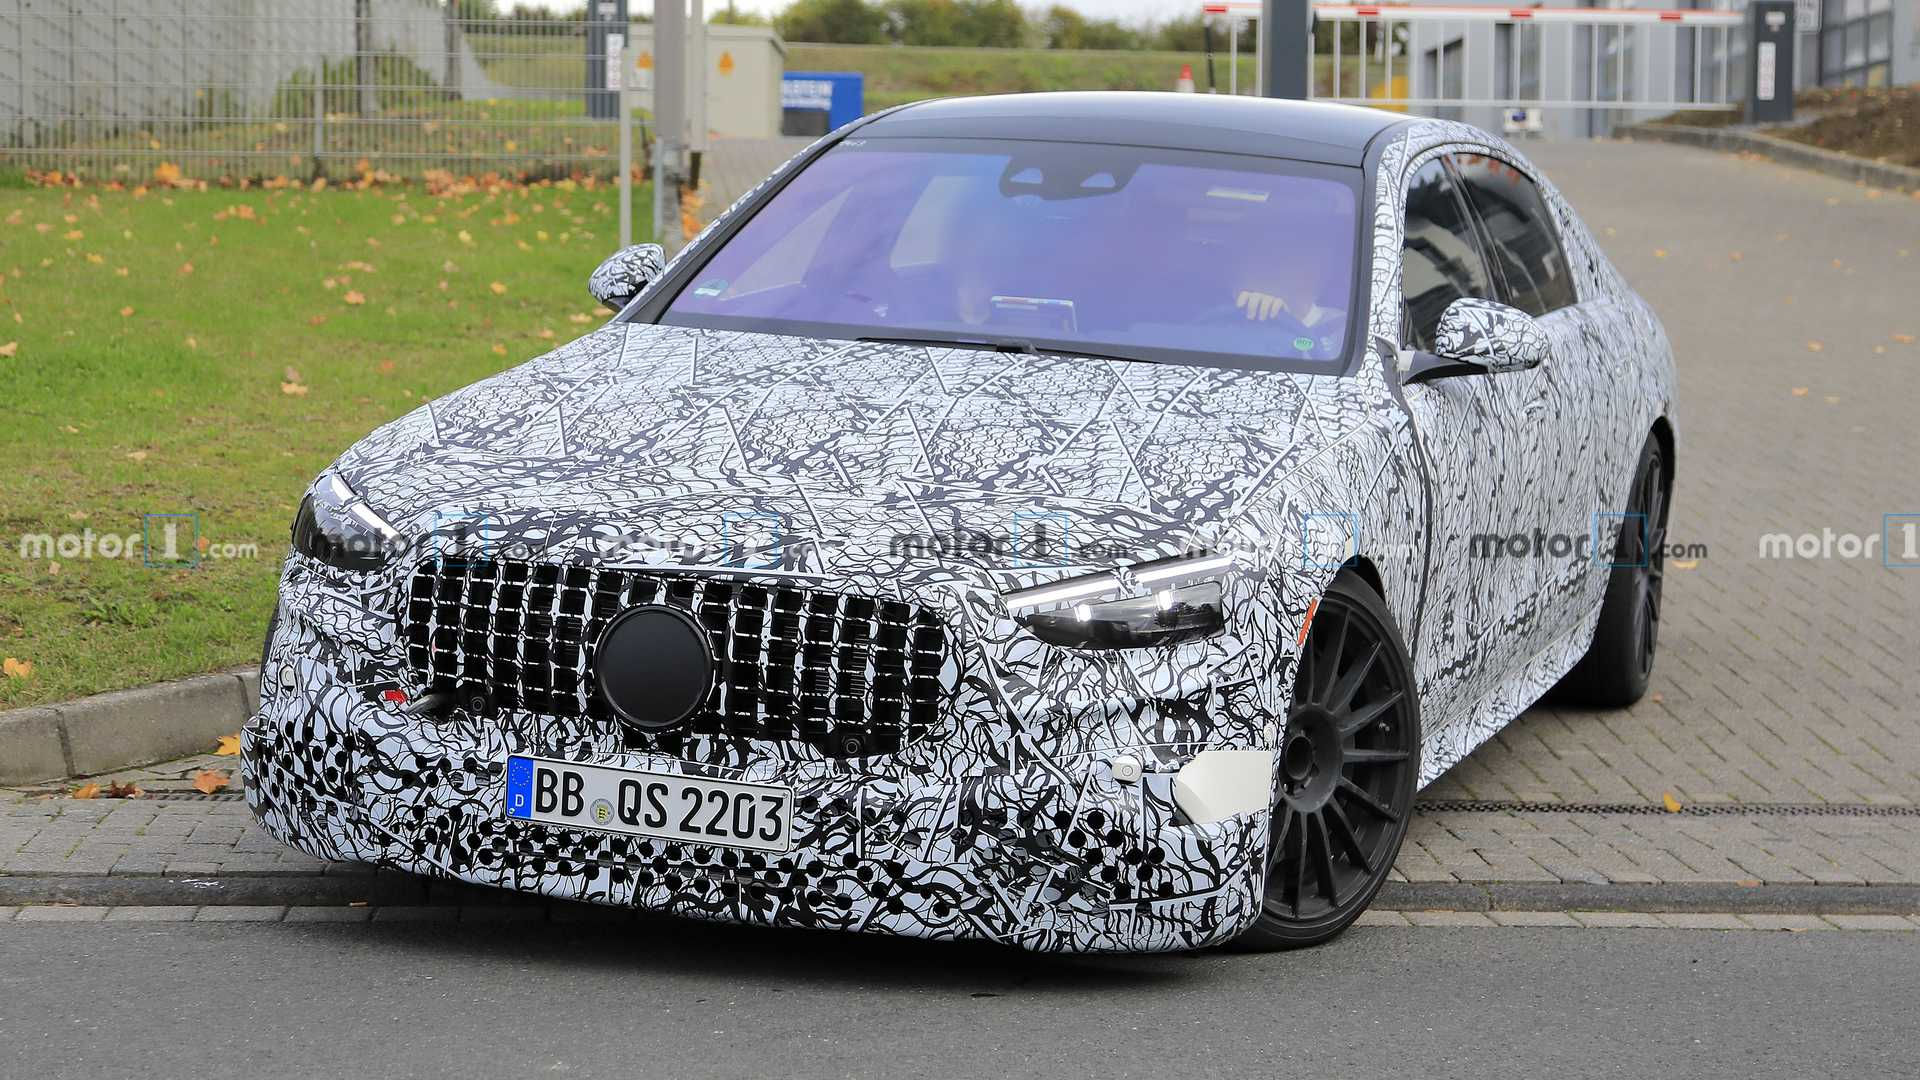 The range-topping S 63 model by Mercedes-AMG came out for a series of driving tests and was immediately spotted by camera-wielding people. Let's see what's new and exciting, shall we?